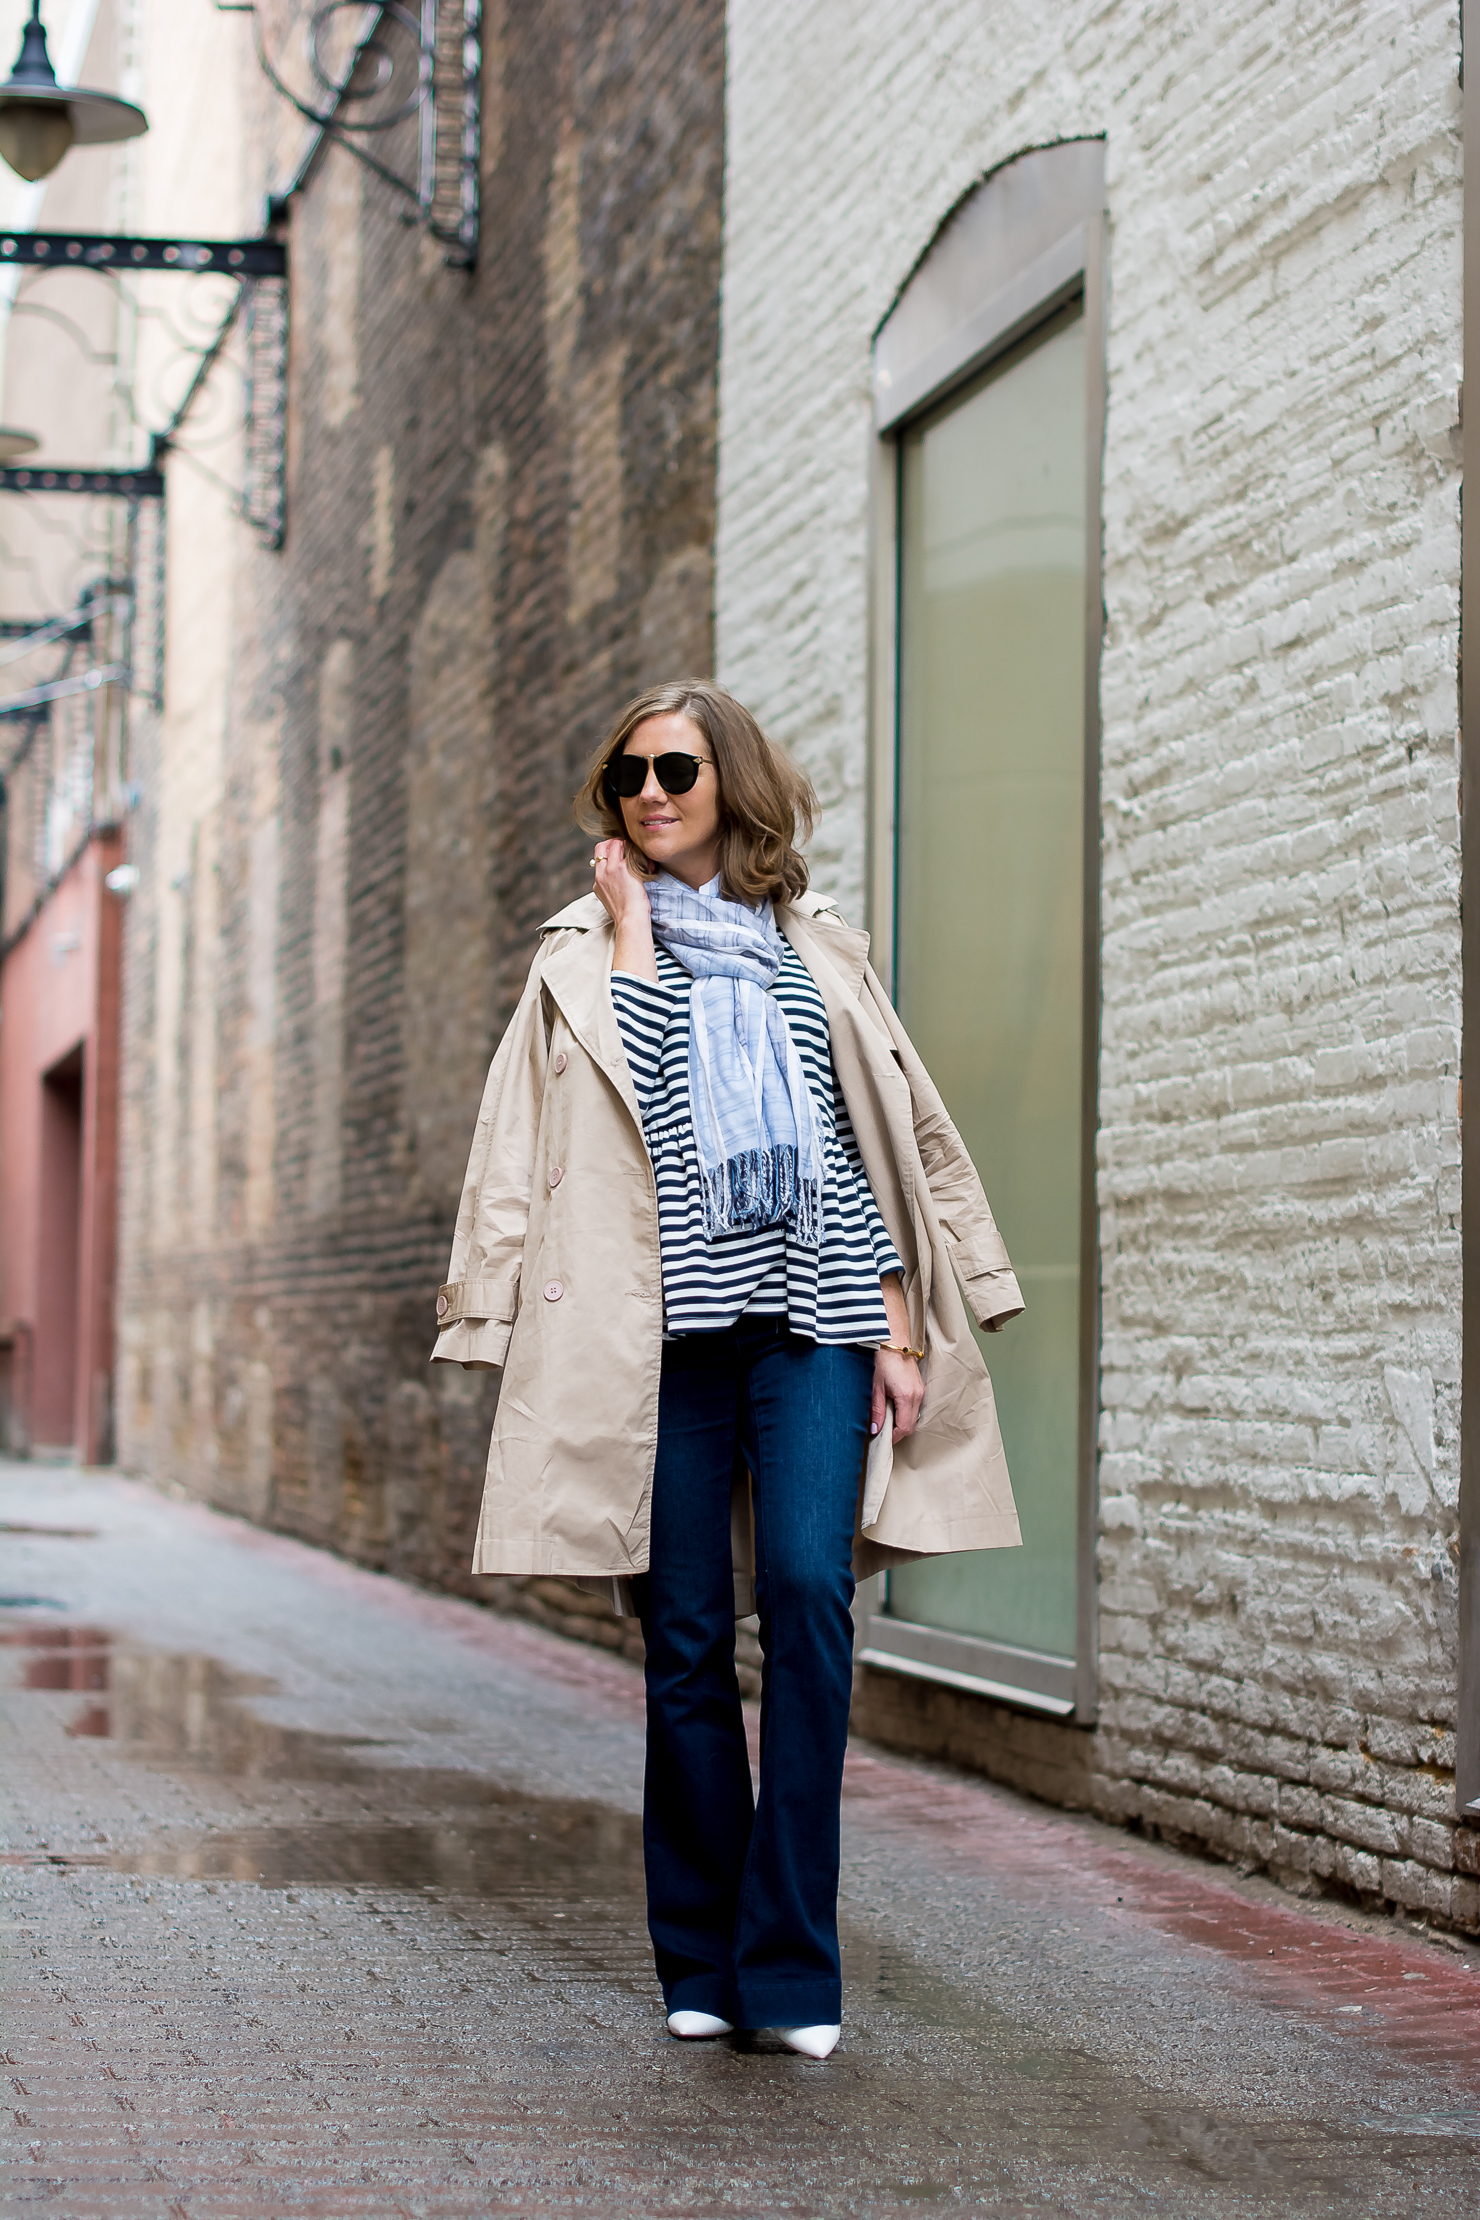 shein-blue-and-white-striped-peplum-jacket-high-rise-dark-wash-flares-trench-coat-white-pumps-h&m-blush-tote-rainy-day-spring-outfit